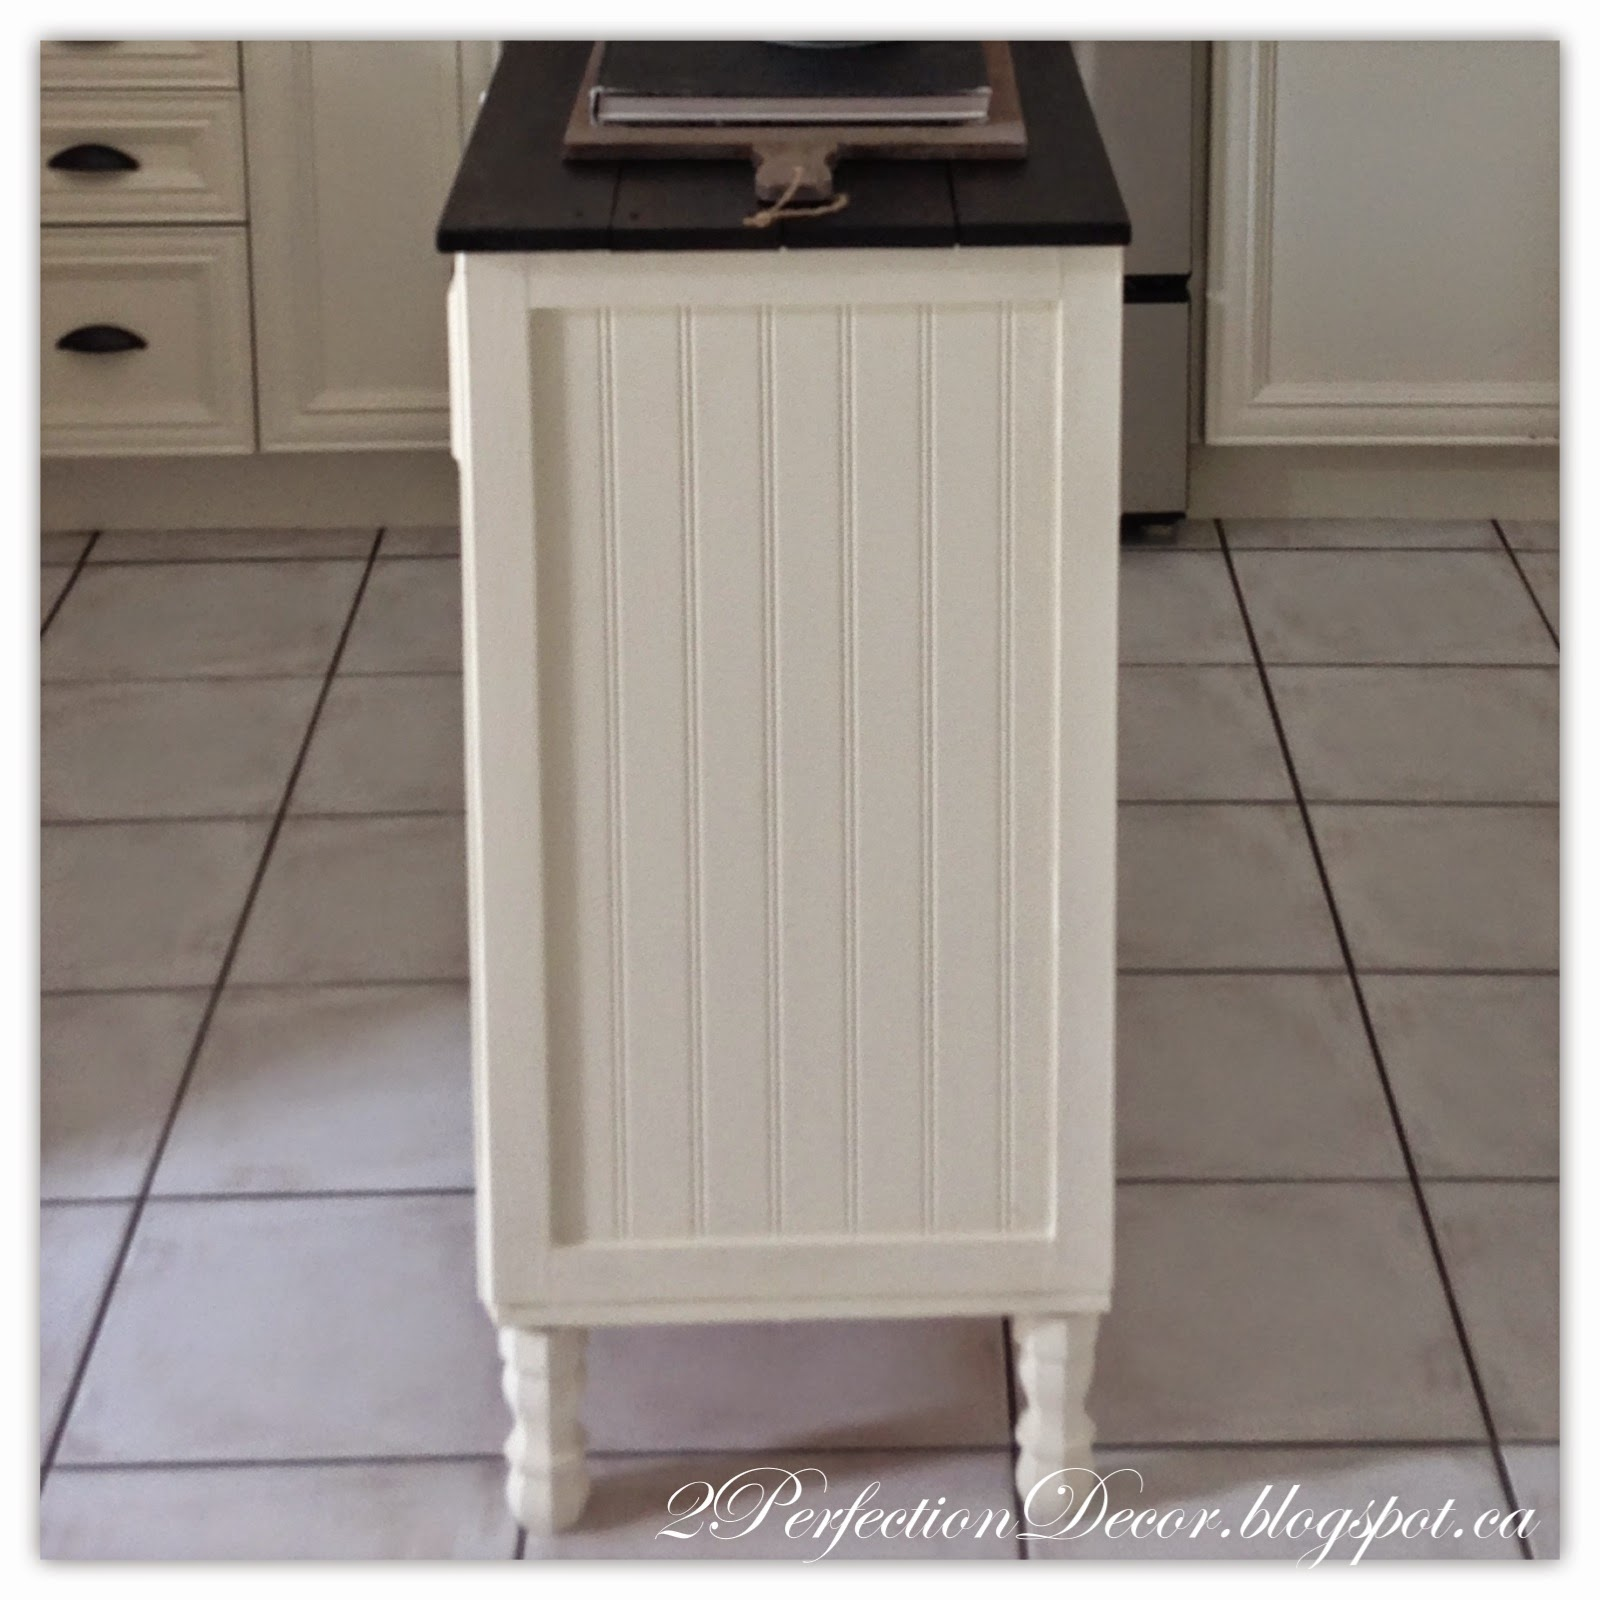 Luxury Adding legs to kitchen island by Perfection Decor featured on Remodelaholic